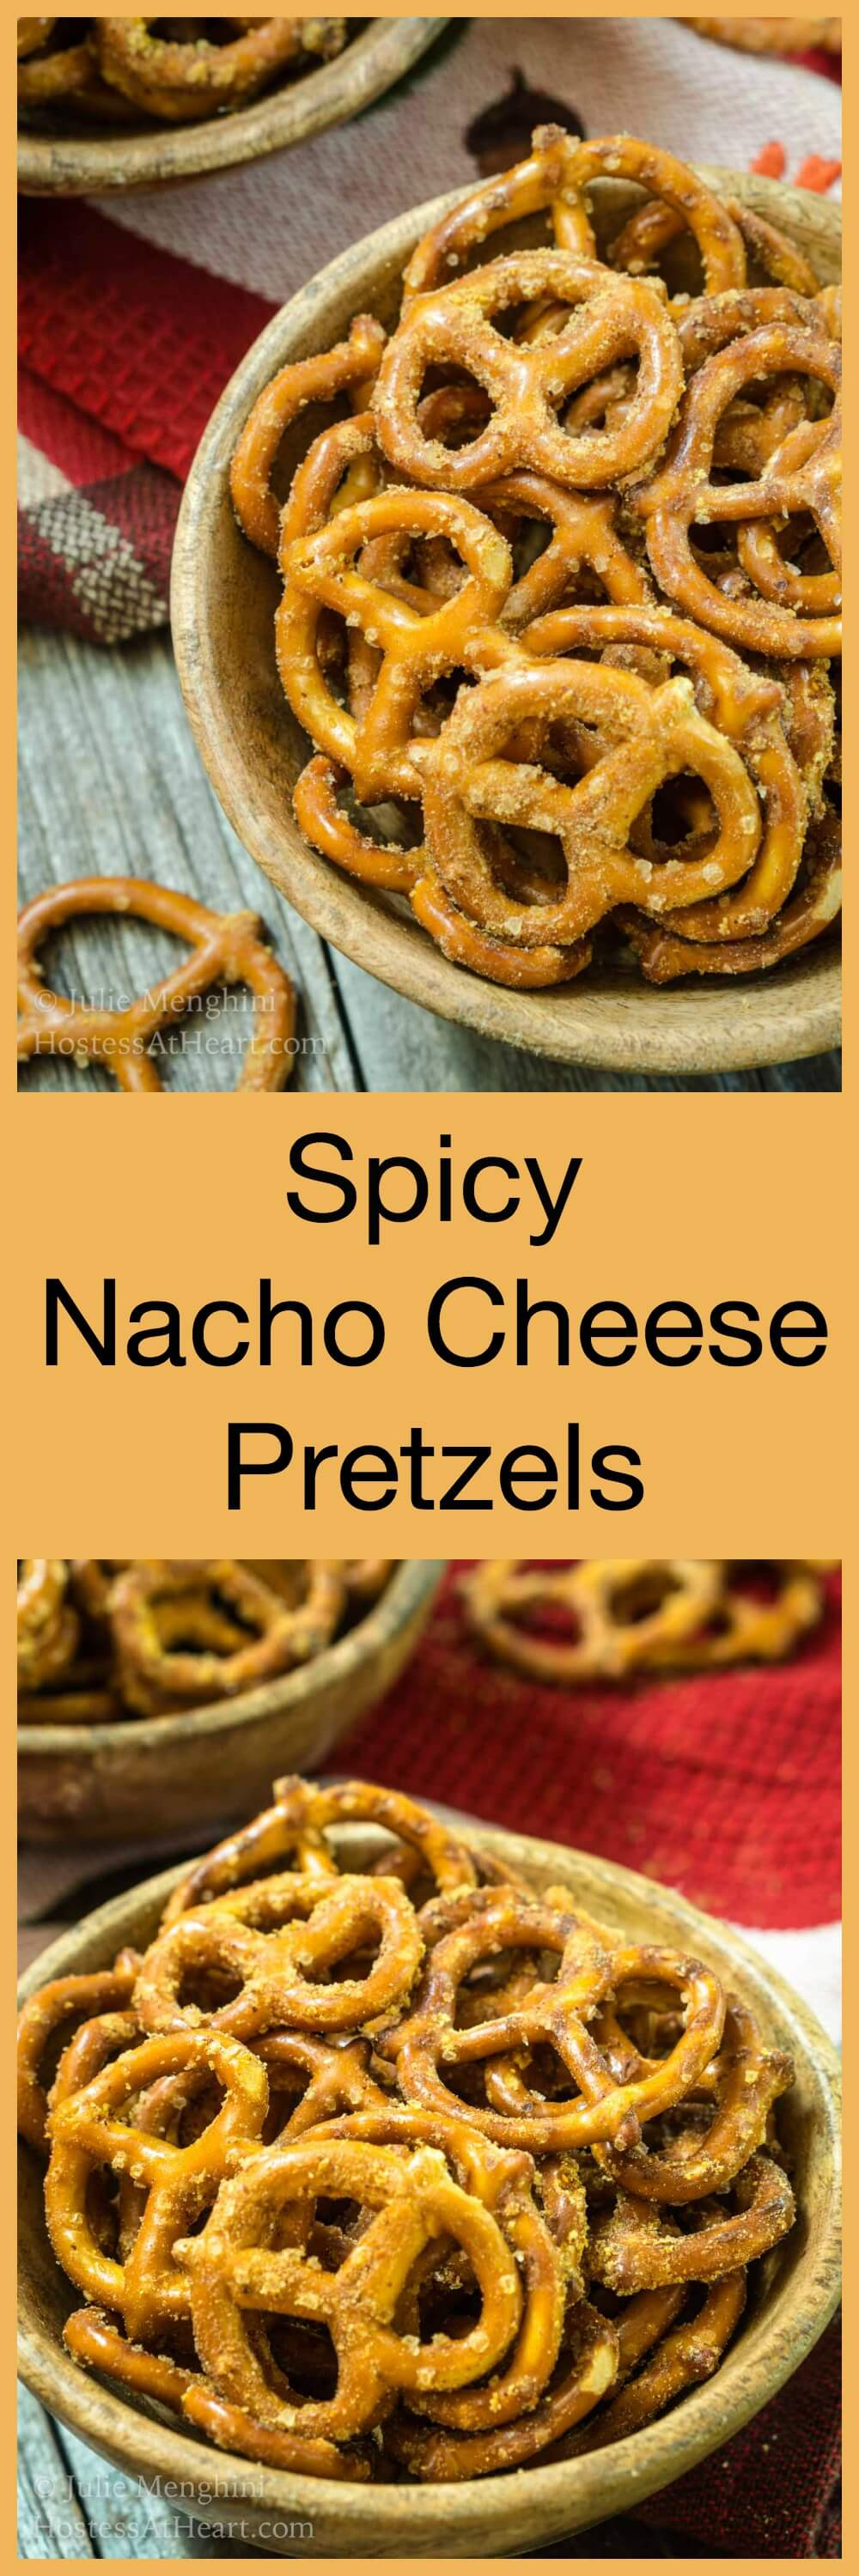 Spicy Nacho Cheese Pretzels are crunchy, buttery, salty and spicy.  They're a pull up your sleeves and grab a beverage kind of tailgating snack. #appetizer #partyfood #footballsnack #helmetsnackmix